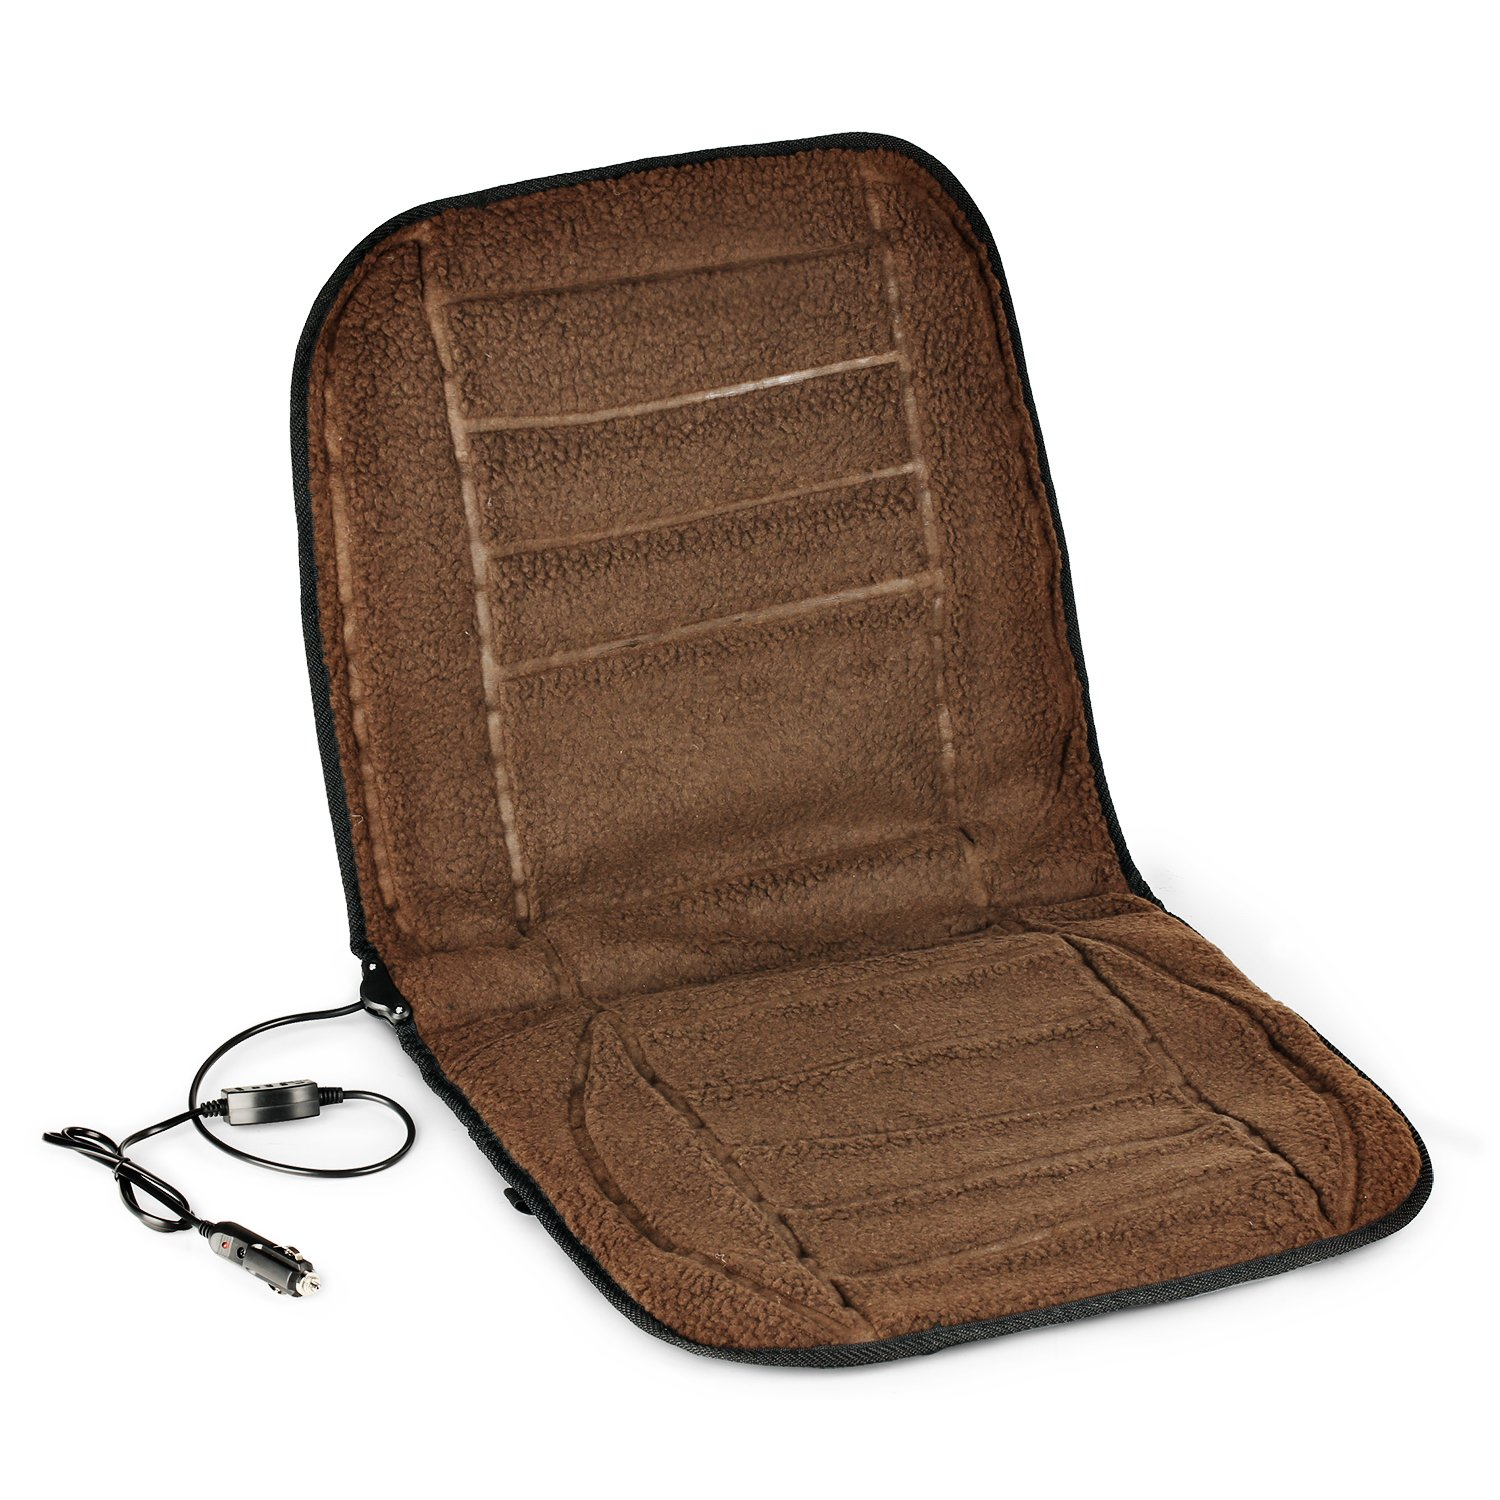 AFTERPARTZ 12V H-W45 Heated Front Seat Cushion Coffee